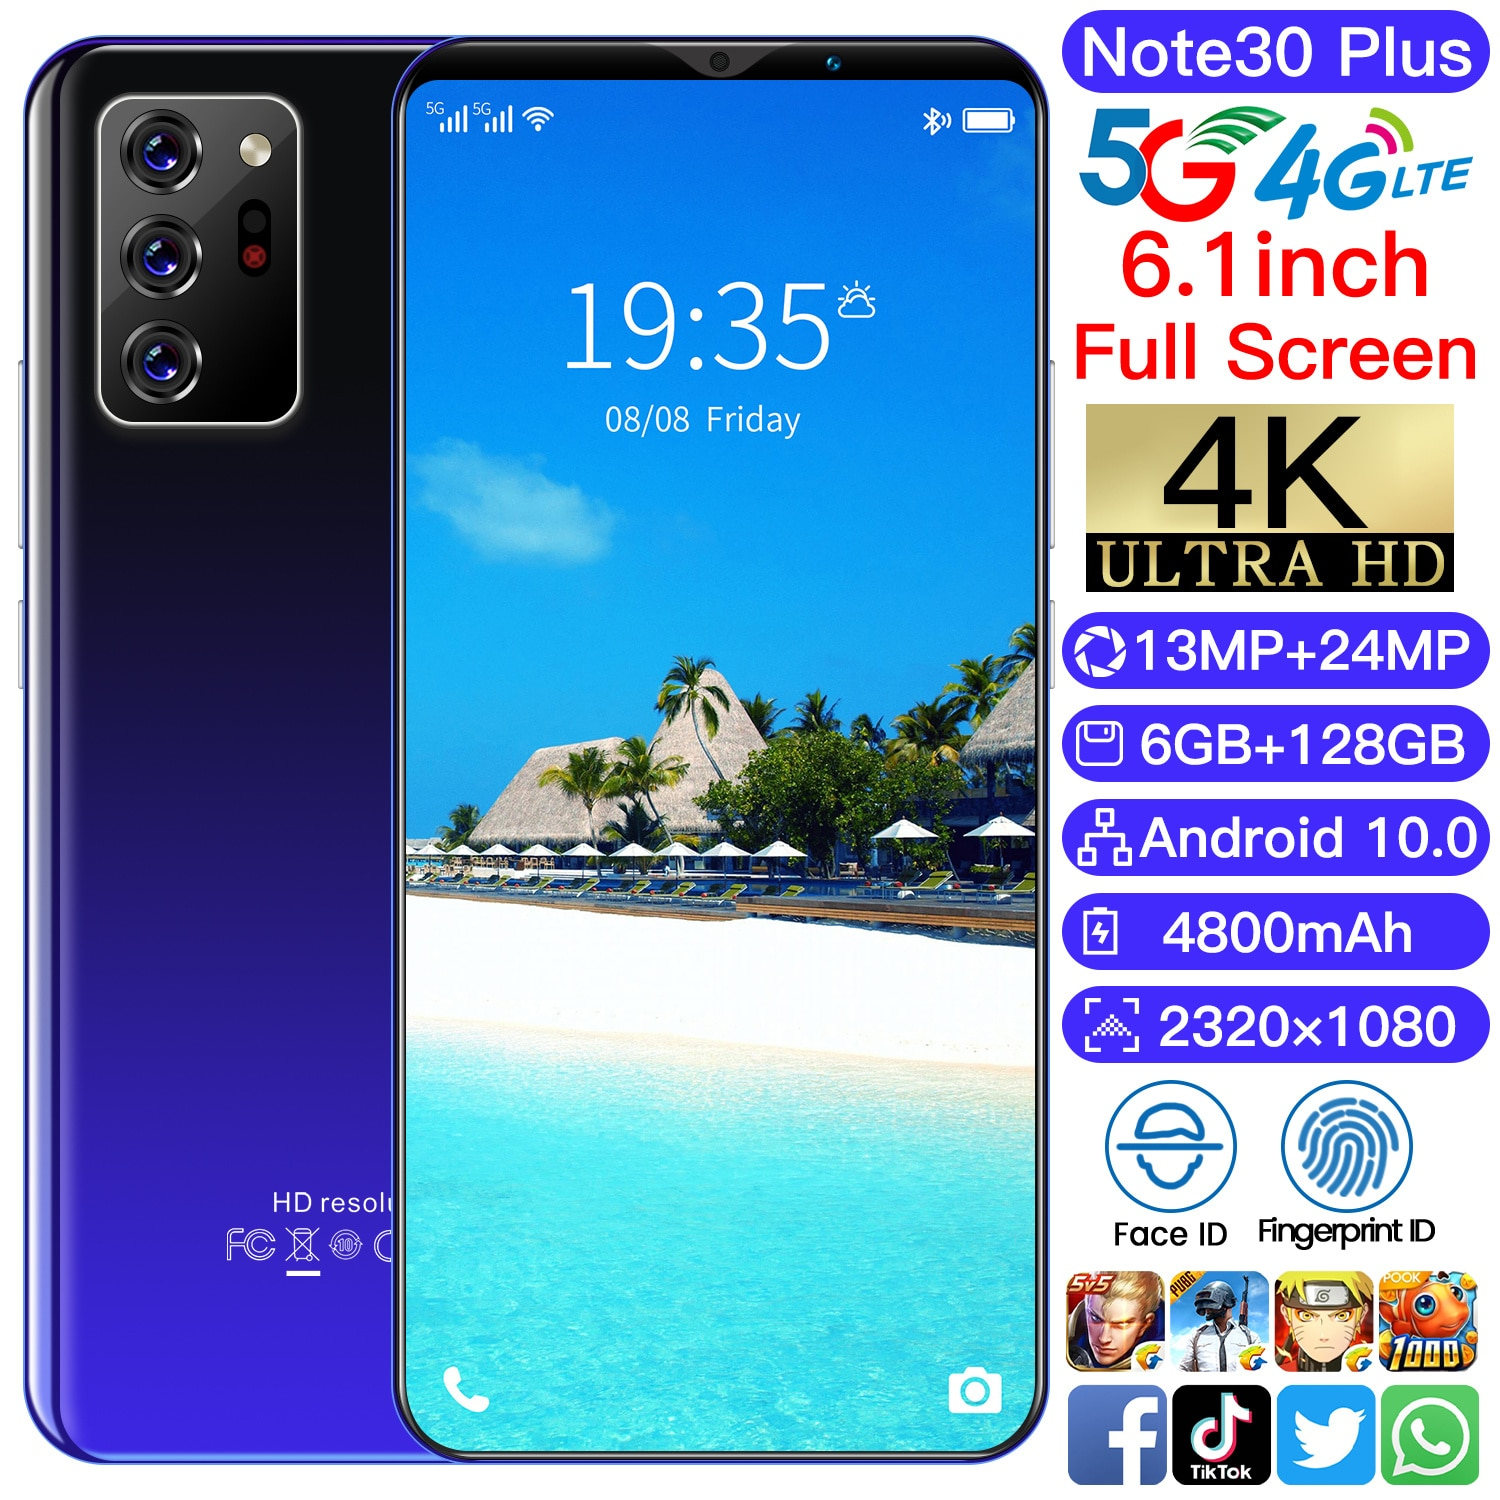 Global Version Note30 Plus 6.1 Inch Android10 Smartphone 4G LTE 5G Network Phone 4800mAh 6+128GB Face Unlock Dual SIM Cellphone